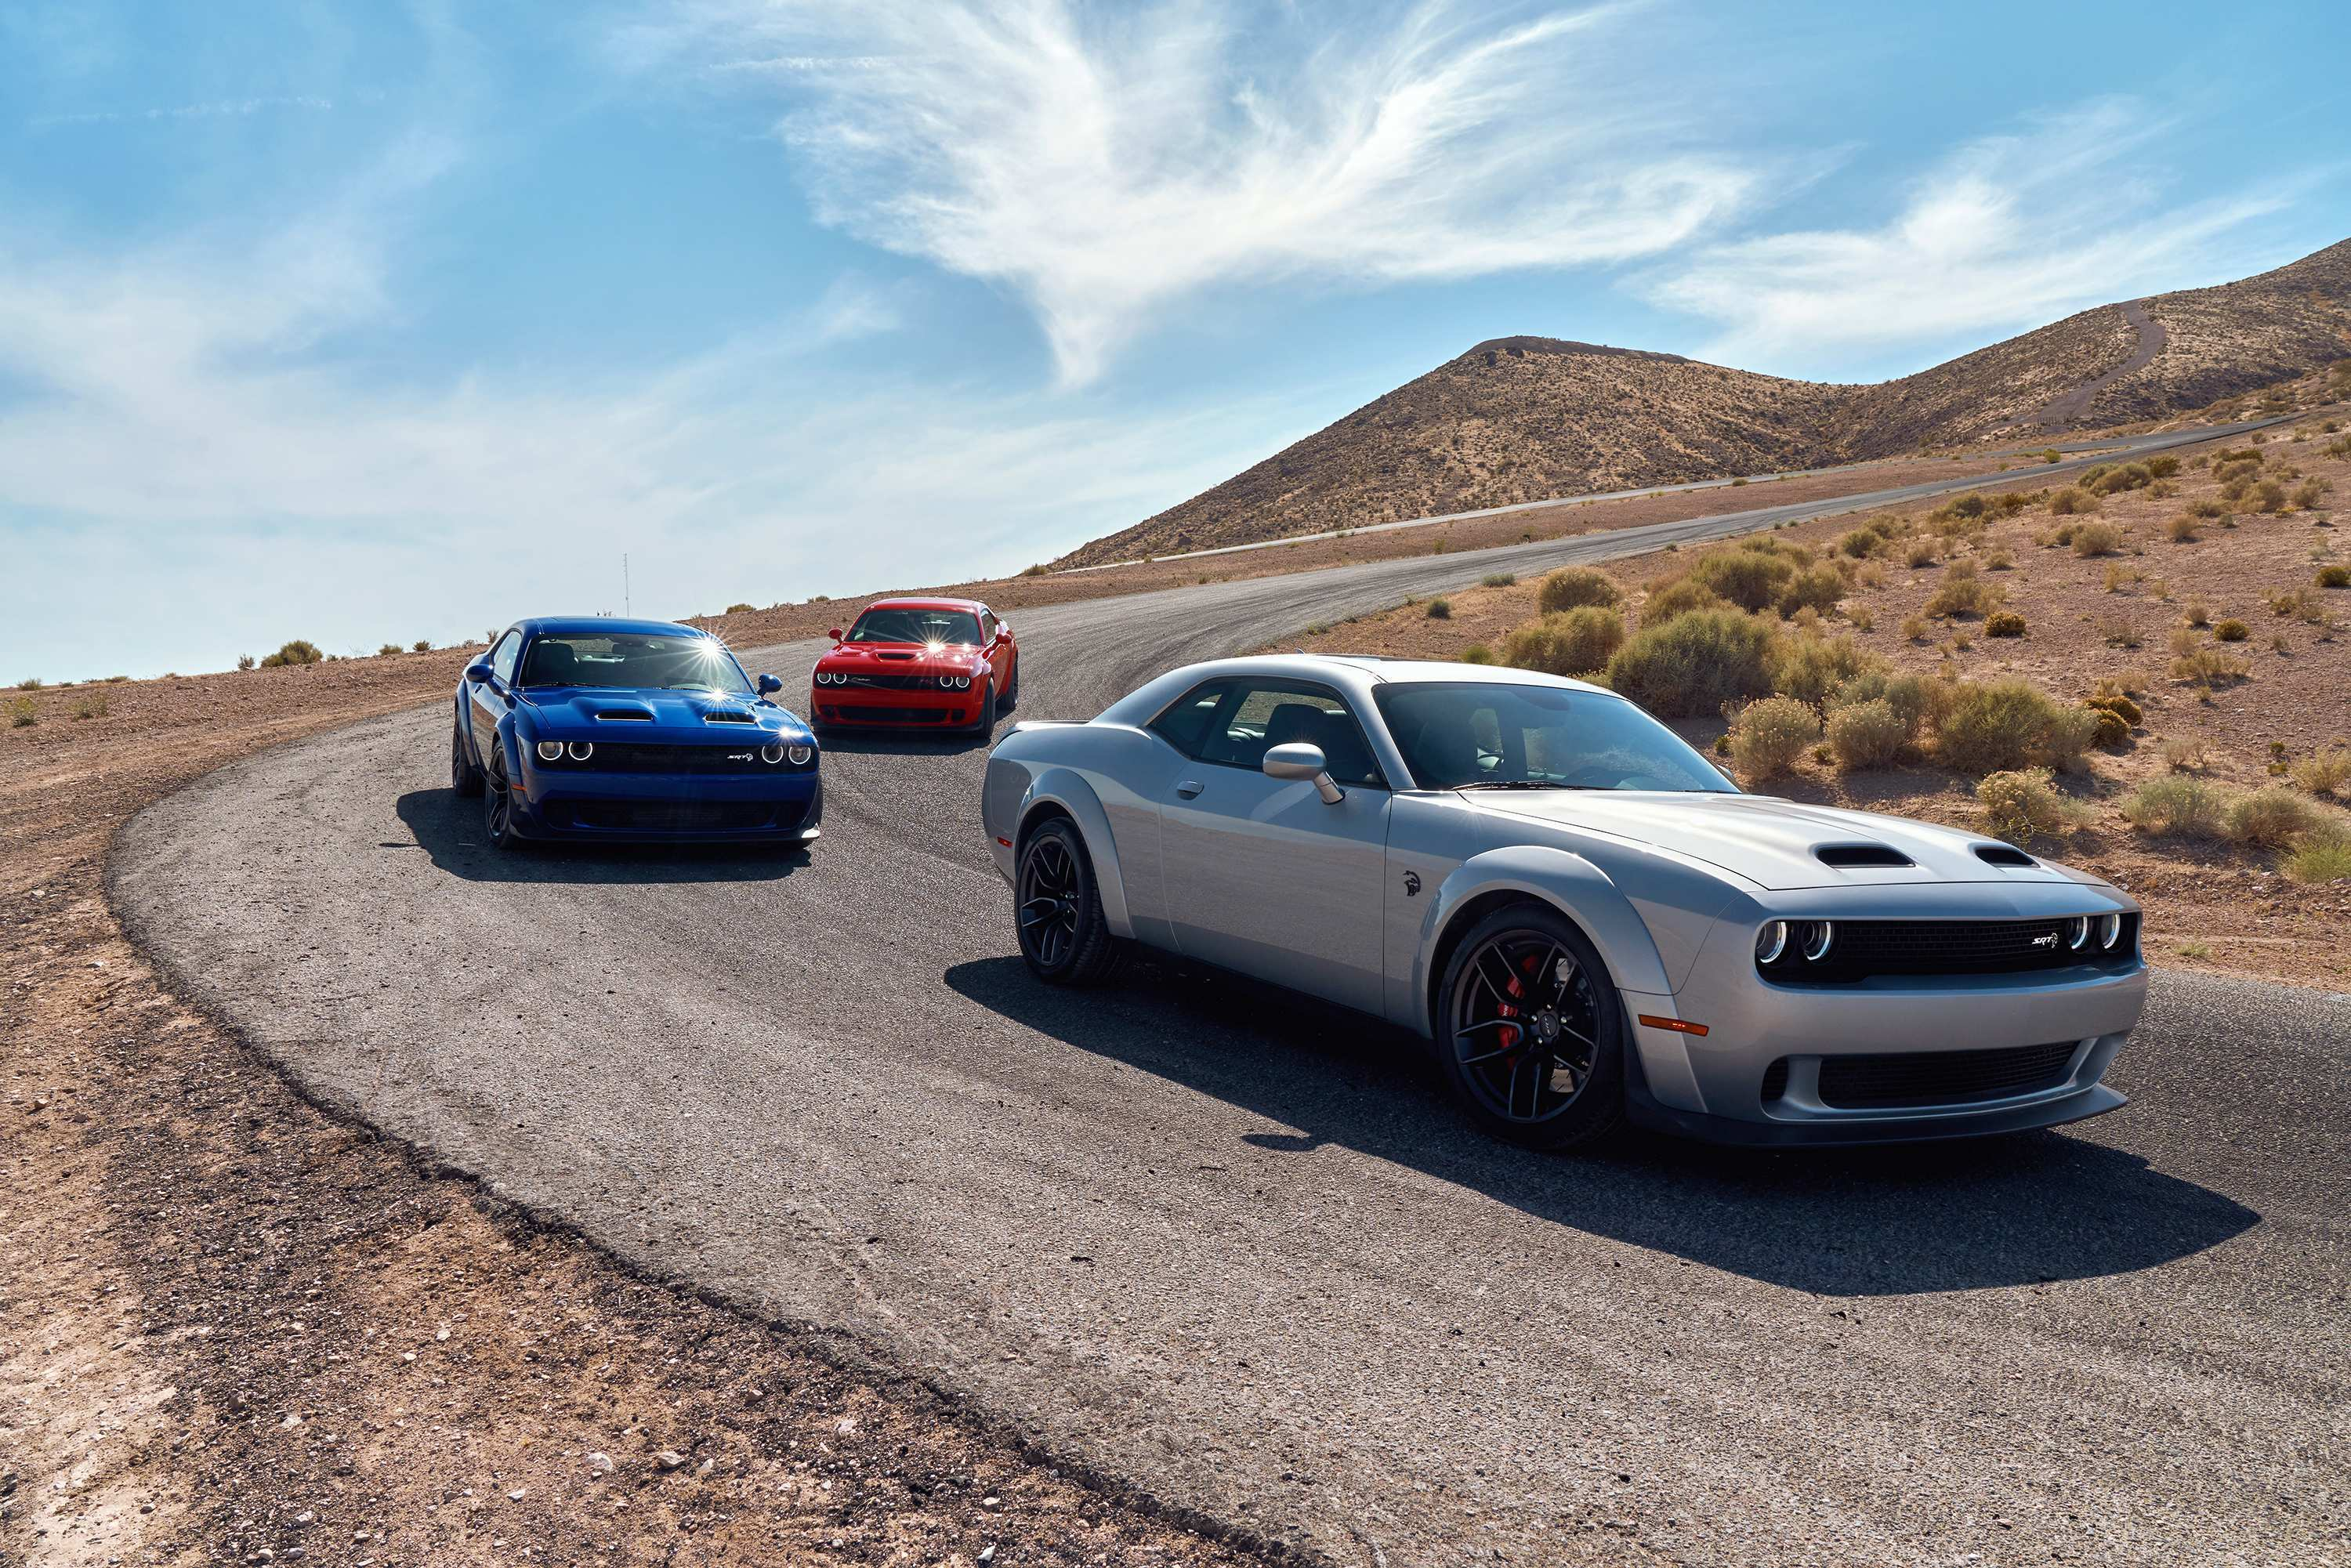 80 Concept of Will There Be A 2019 Dodge Demon Exterior and Interior by Will There Be A 2019 Dodge Demon